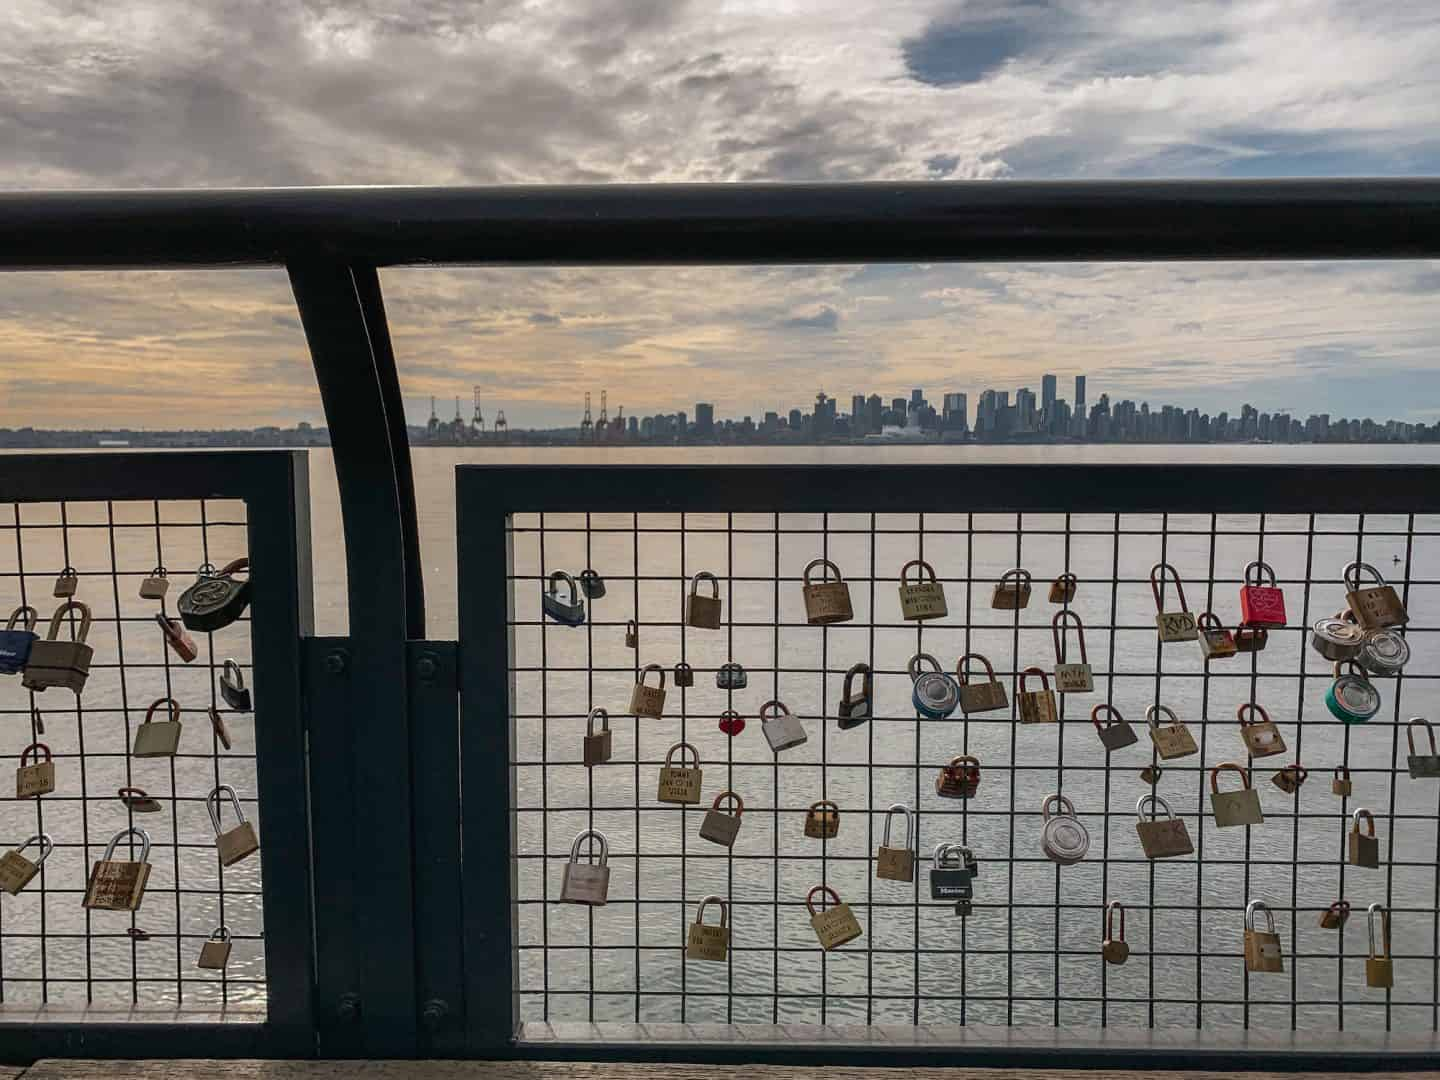 Love locks at the Lonsdale Quay in North Vancouver, British Columbia